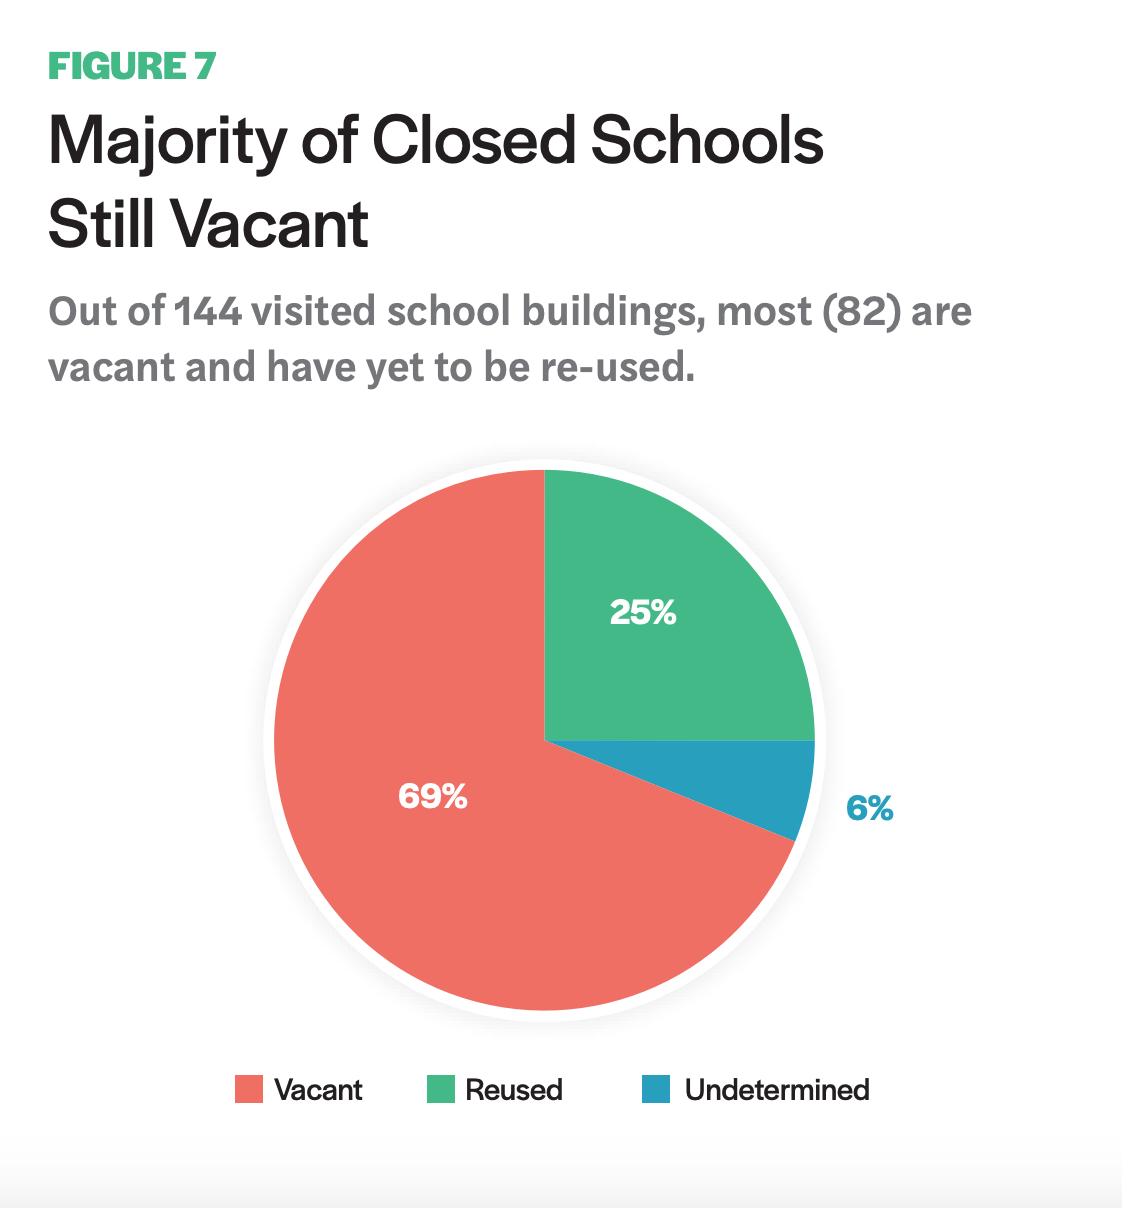 Figure 7 includes a chart showcasing how the Majority of Closed Schools Still Vacant